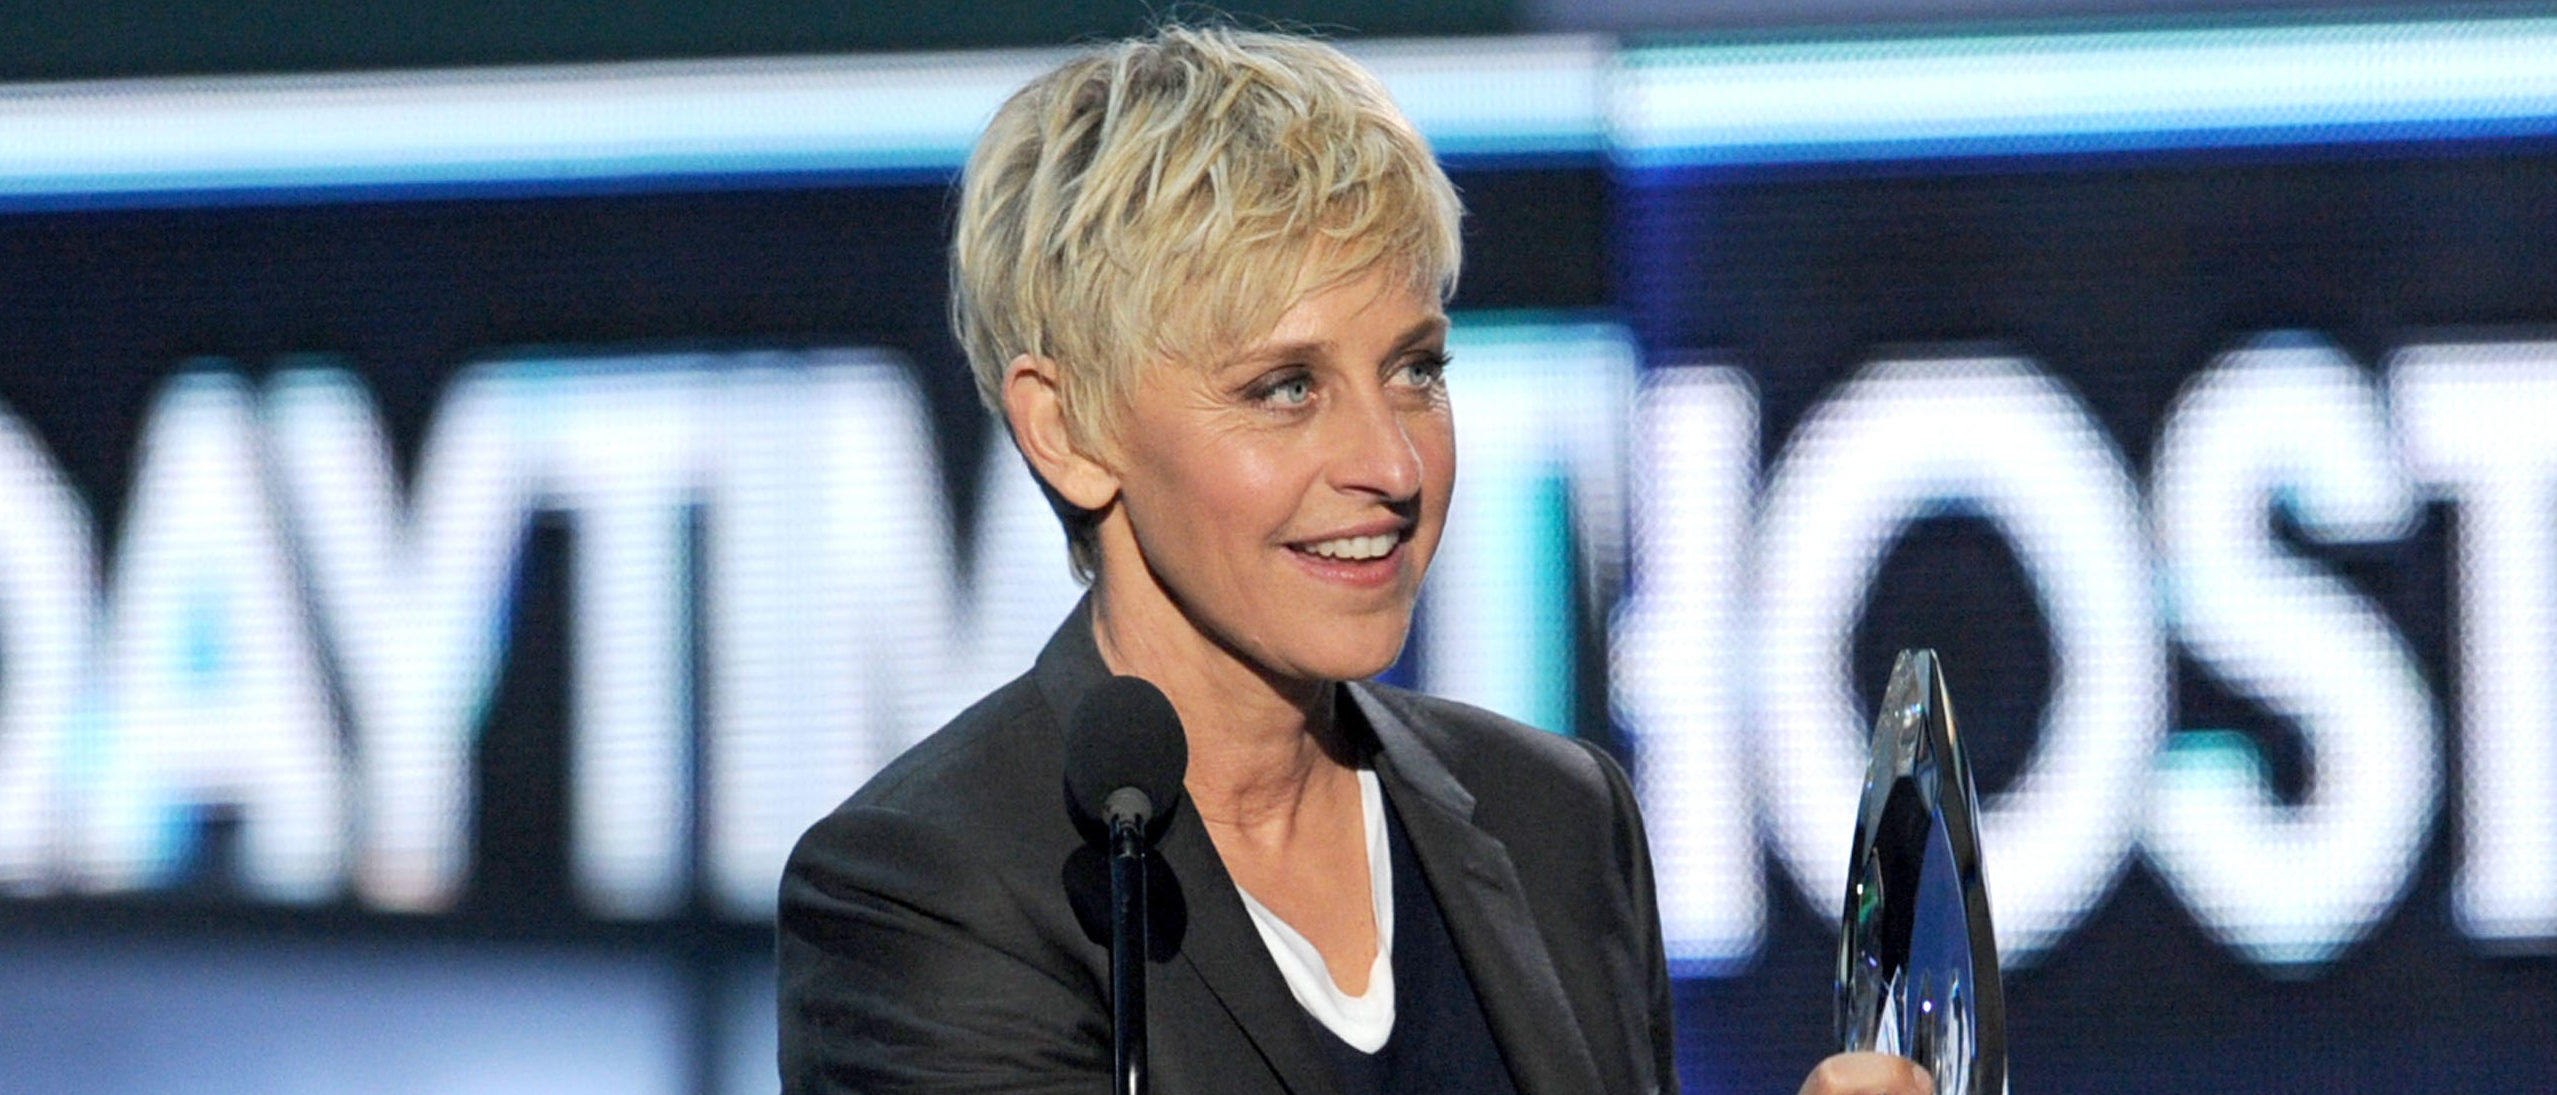 """LOS ANGELES, CA - JANUARY 11: TV personality Ellen DeGeneres, winner Favorite Daytime TV Host for """"The Ellen DeGeneres Show,"""" speaks onstage at the 2012 People's Choice Awards at Nokia Theatre L.A. Live on January 11, 2012 in Los Angeles, California. (Photo by Kevin Winter/Getty Images)"""